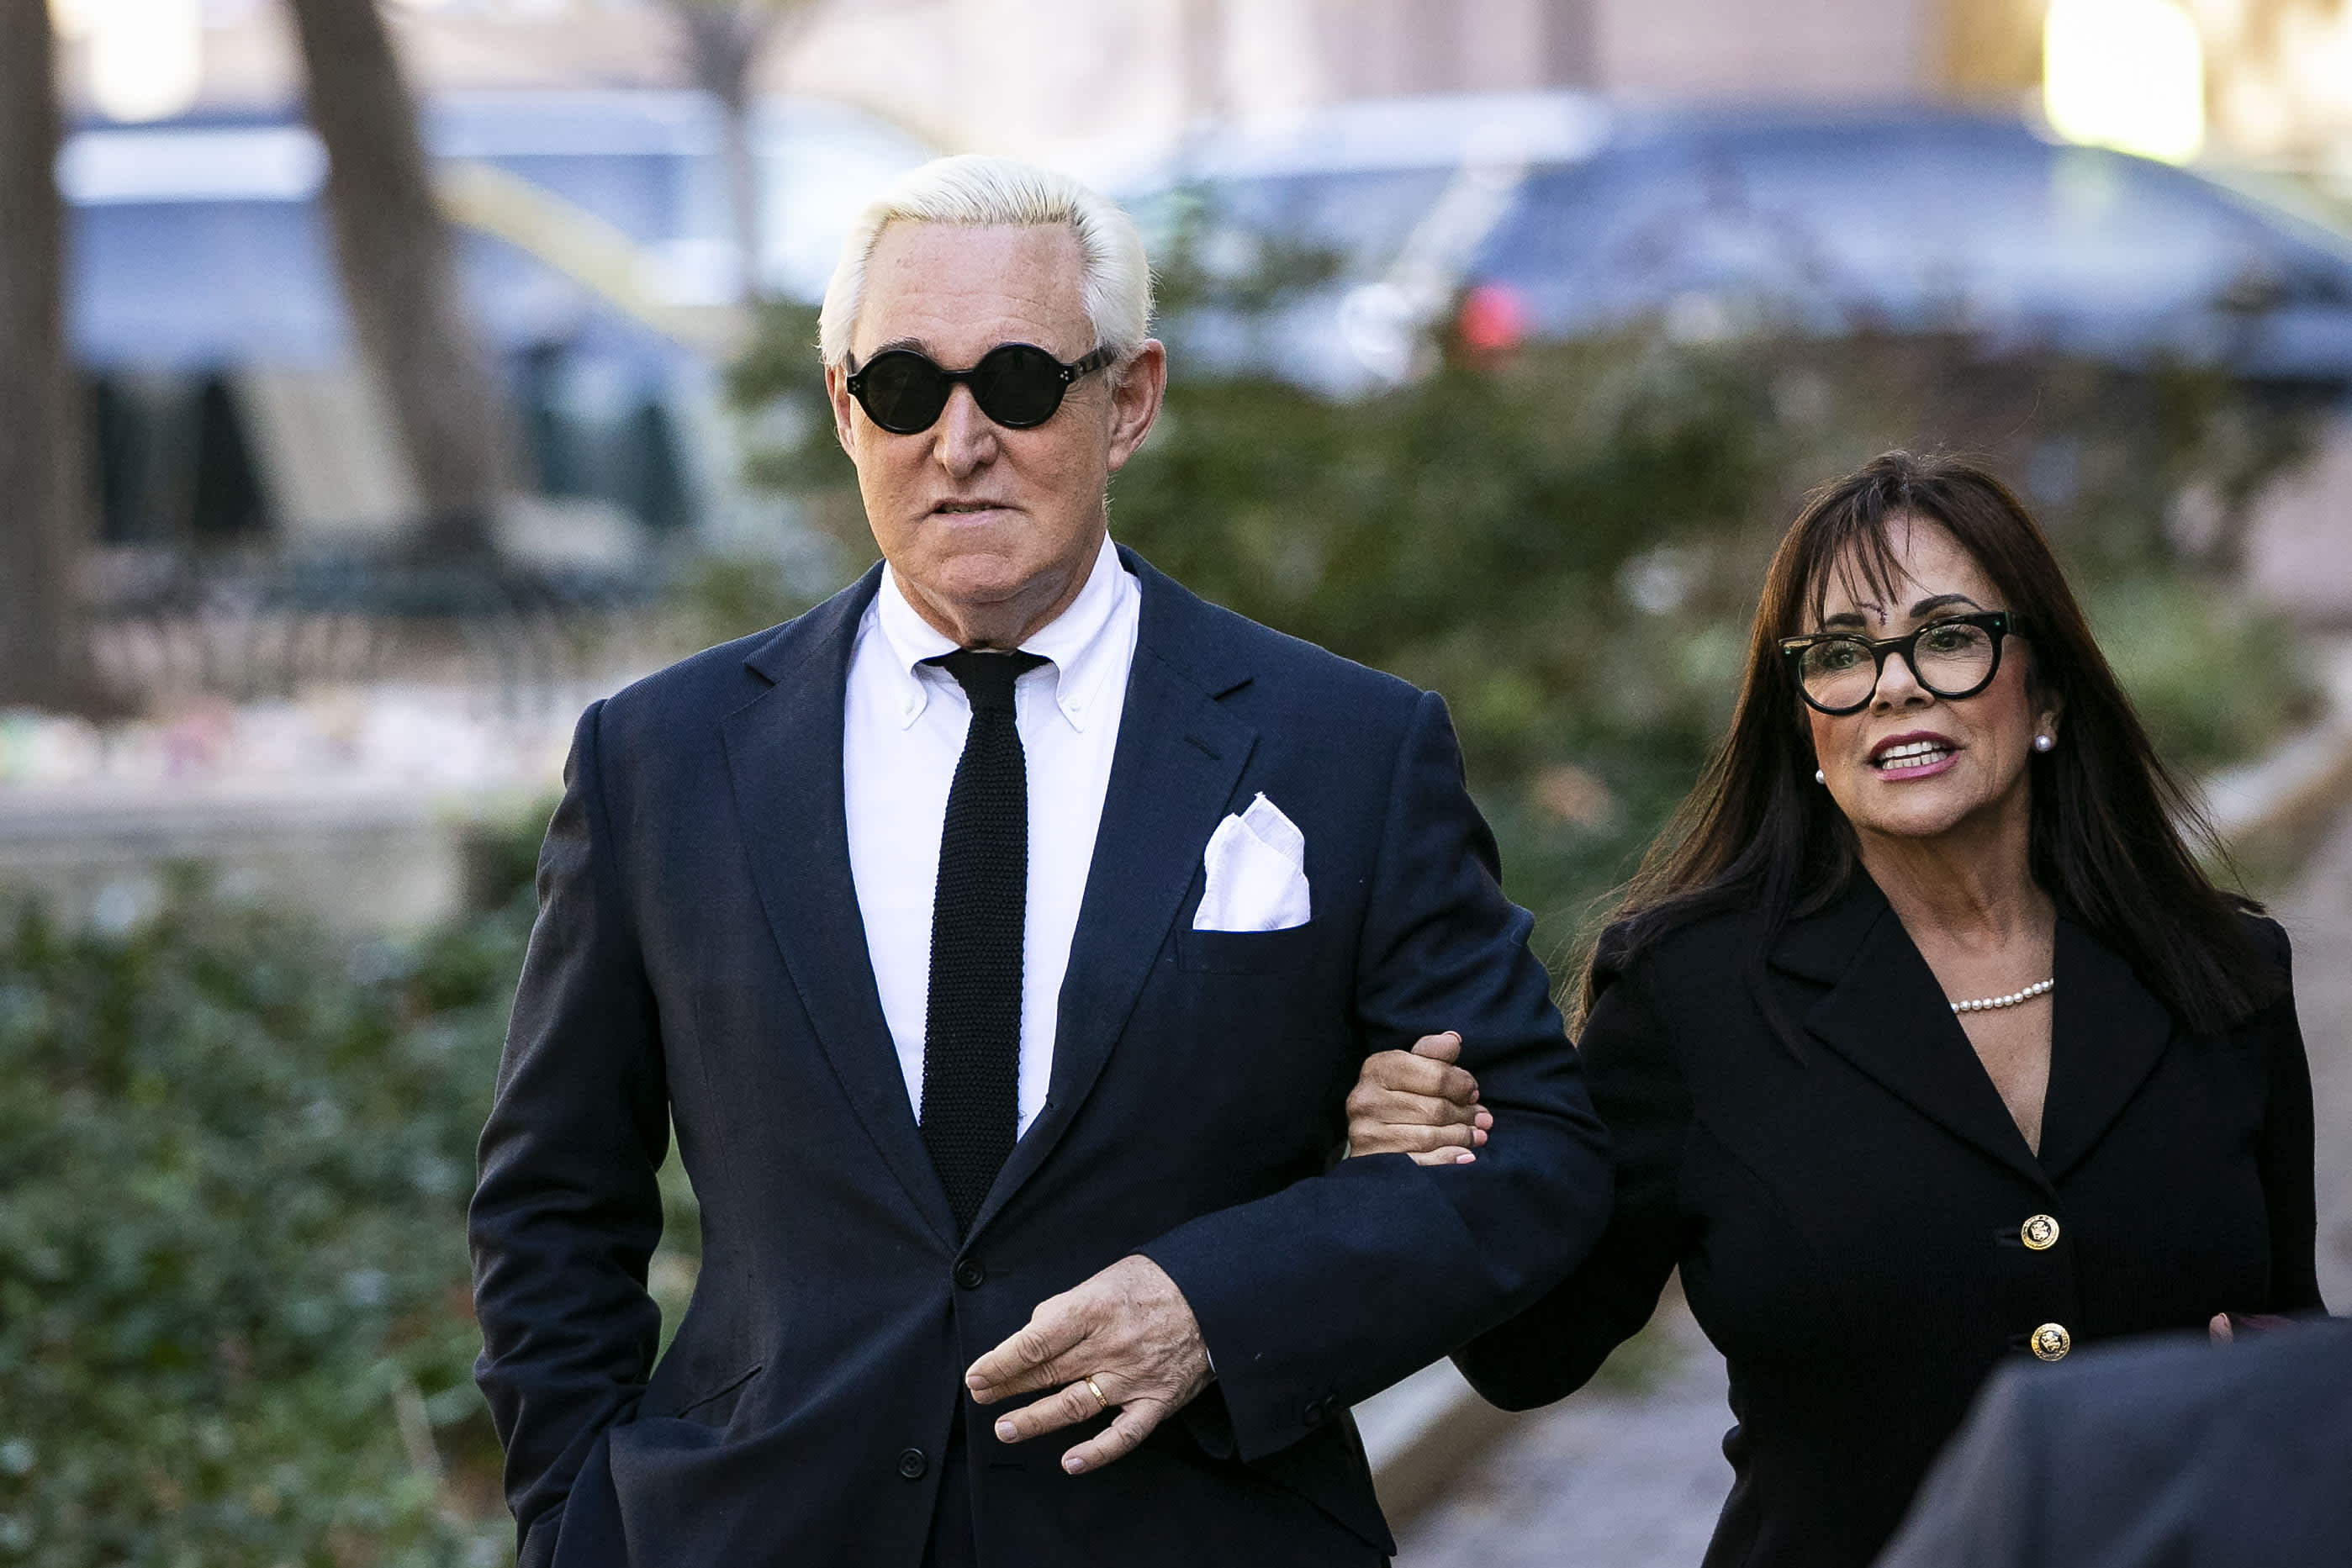 Anti-Trump social media posts by Roger Stone jury forewoman fuel controversy in case